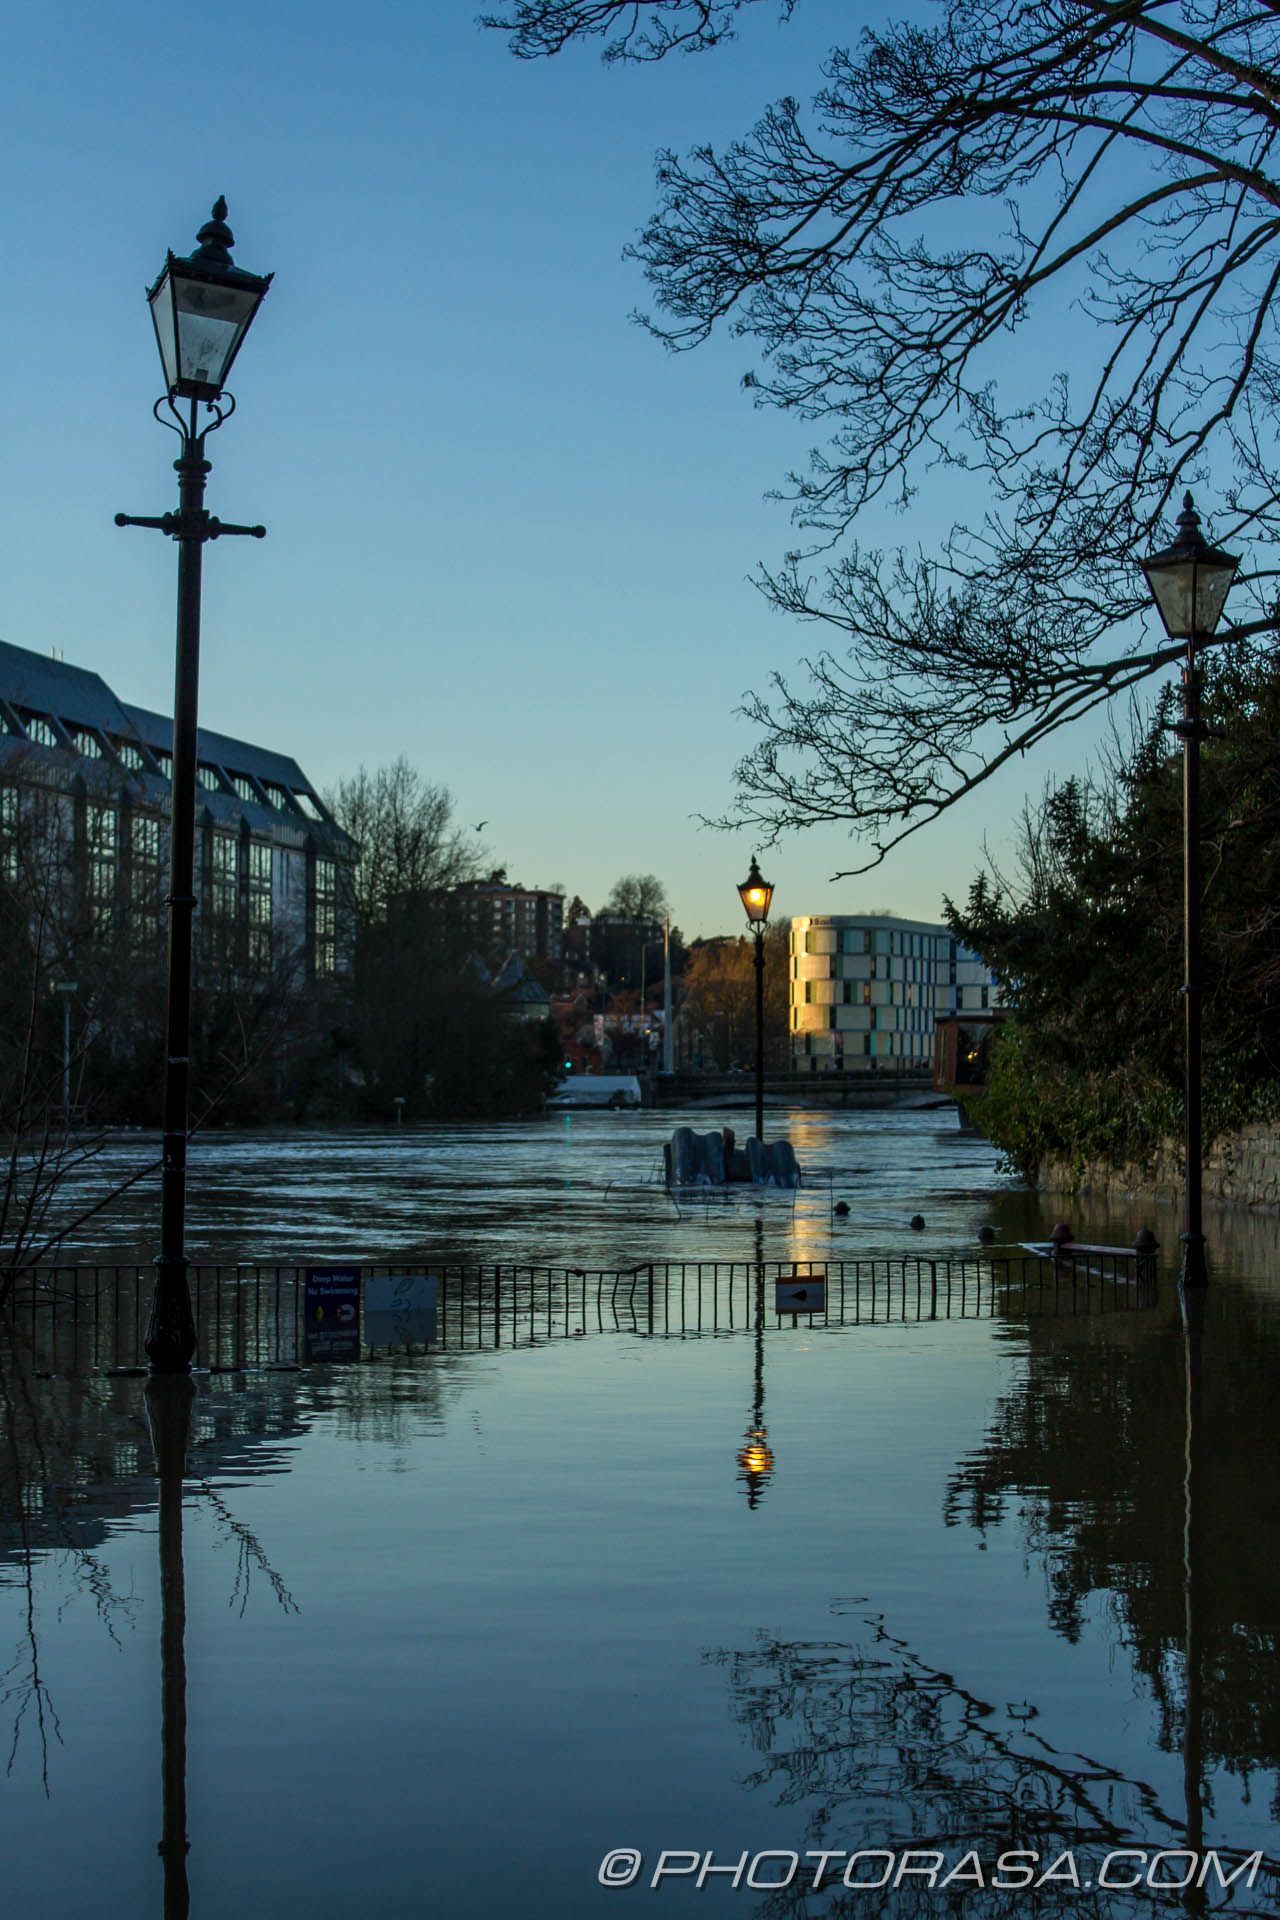 http://photorasa.com/wet-xmas-maidstone-river-medway-floods-town-centre/reflection-of-street-lamps-near-all-saints-church/